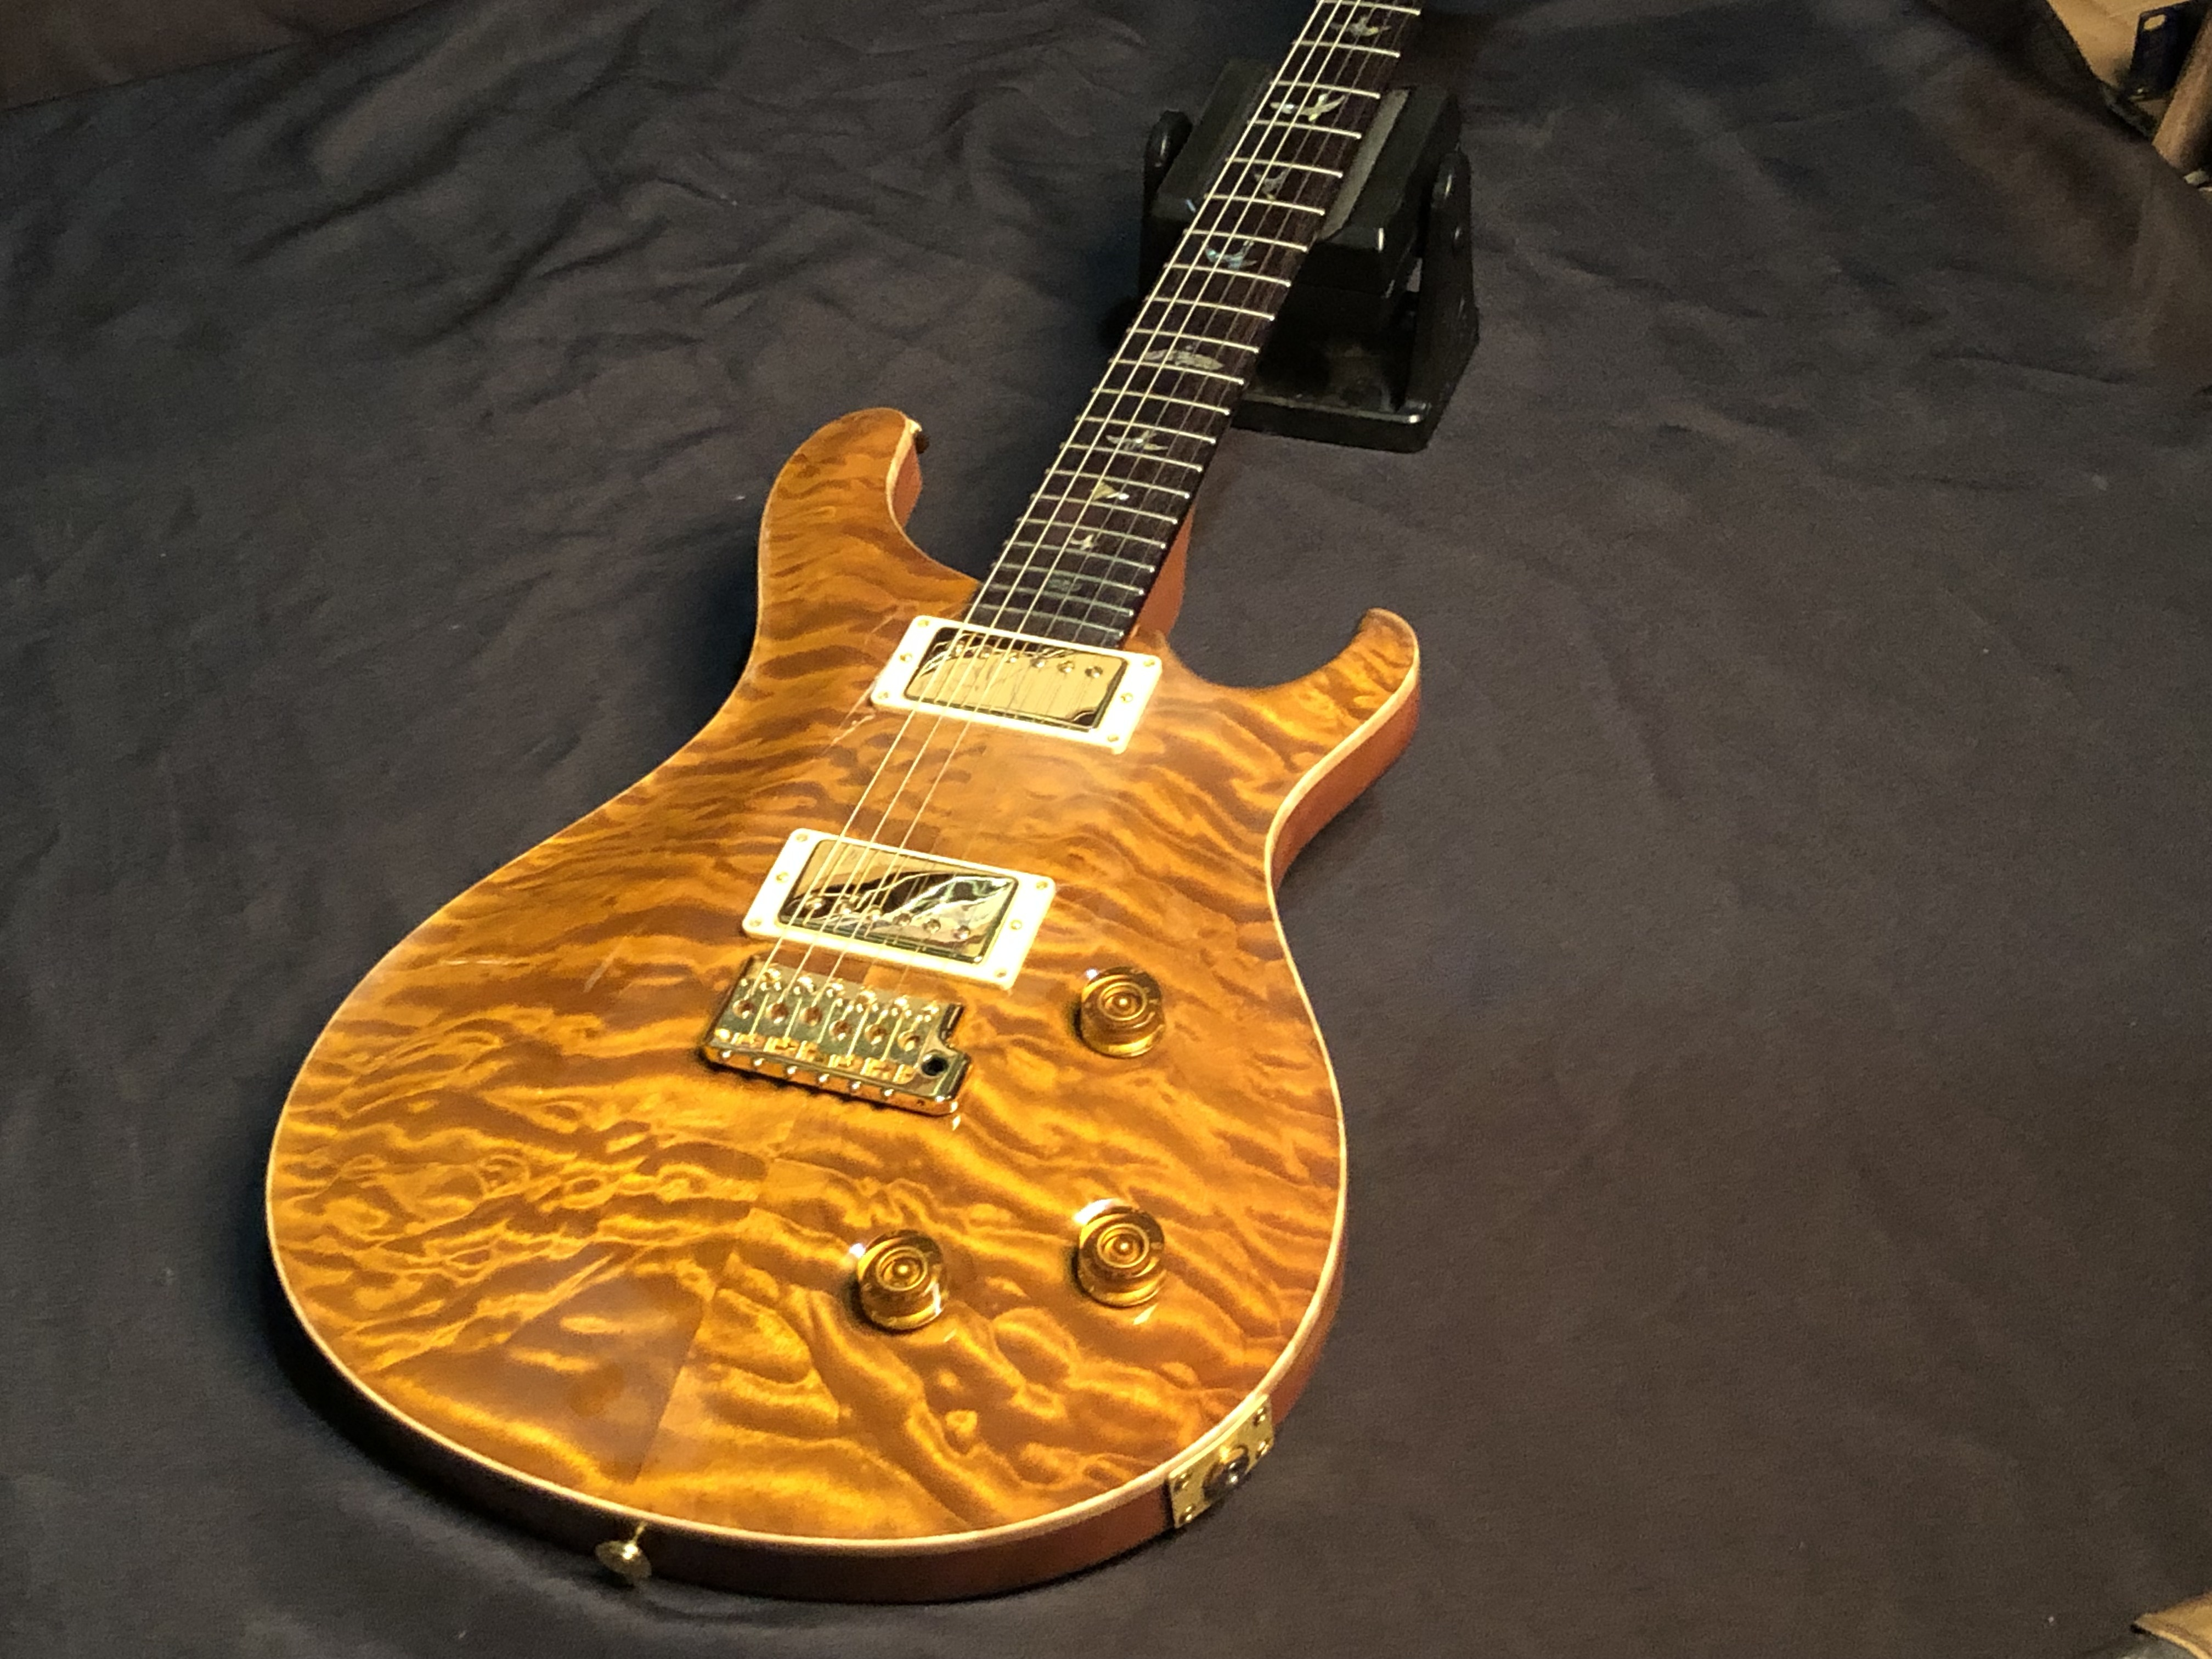 2002 PAUL REED SMITH PRS - CUSTOM 22 AMBER- ELECTRIC GUITAR